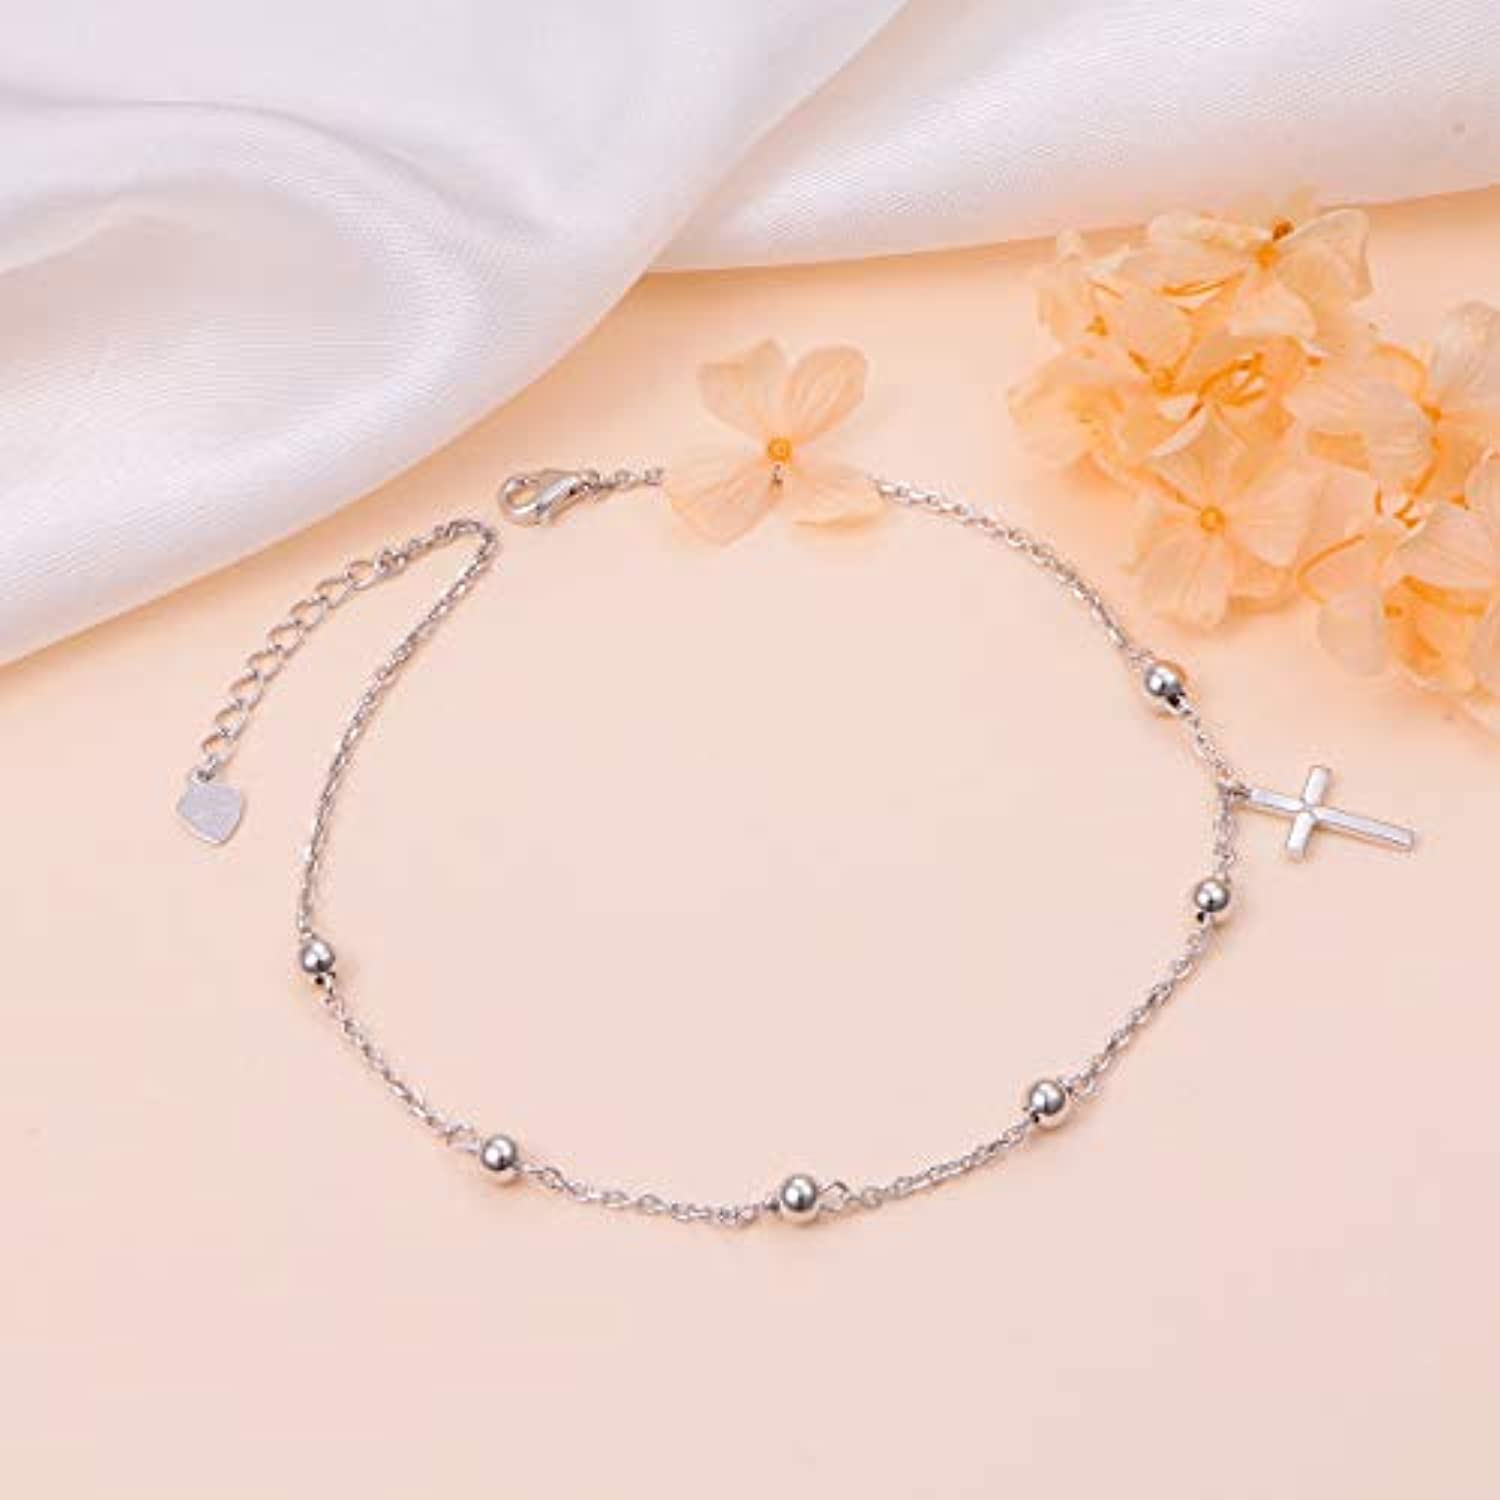 S925 Sterling Silver Cross Anklet for Women Girl Charm Adjustable Foot Ankle Bracelet Jewelry Birthday Gift